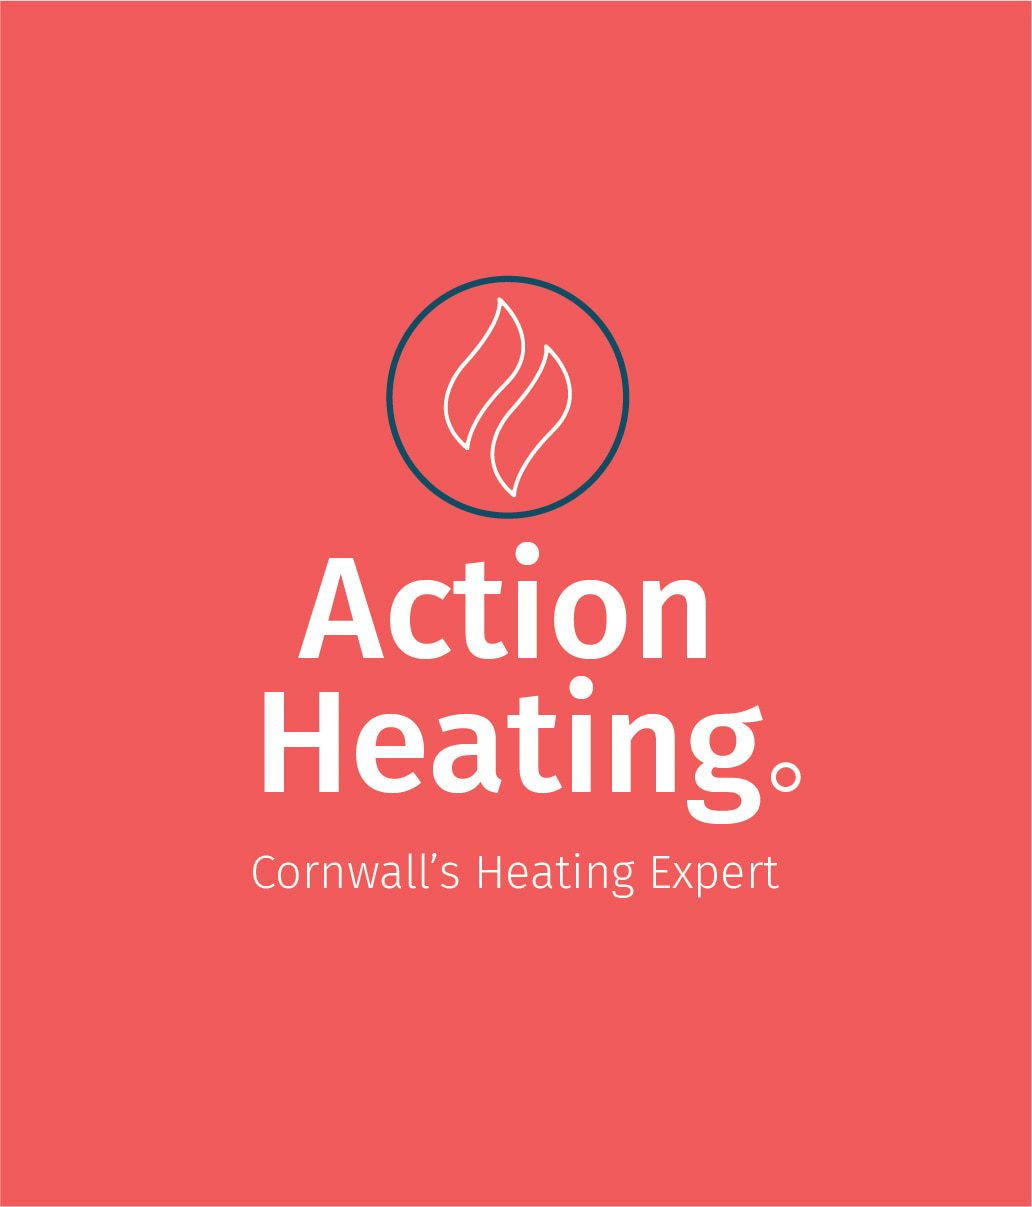 Action Heating